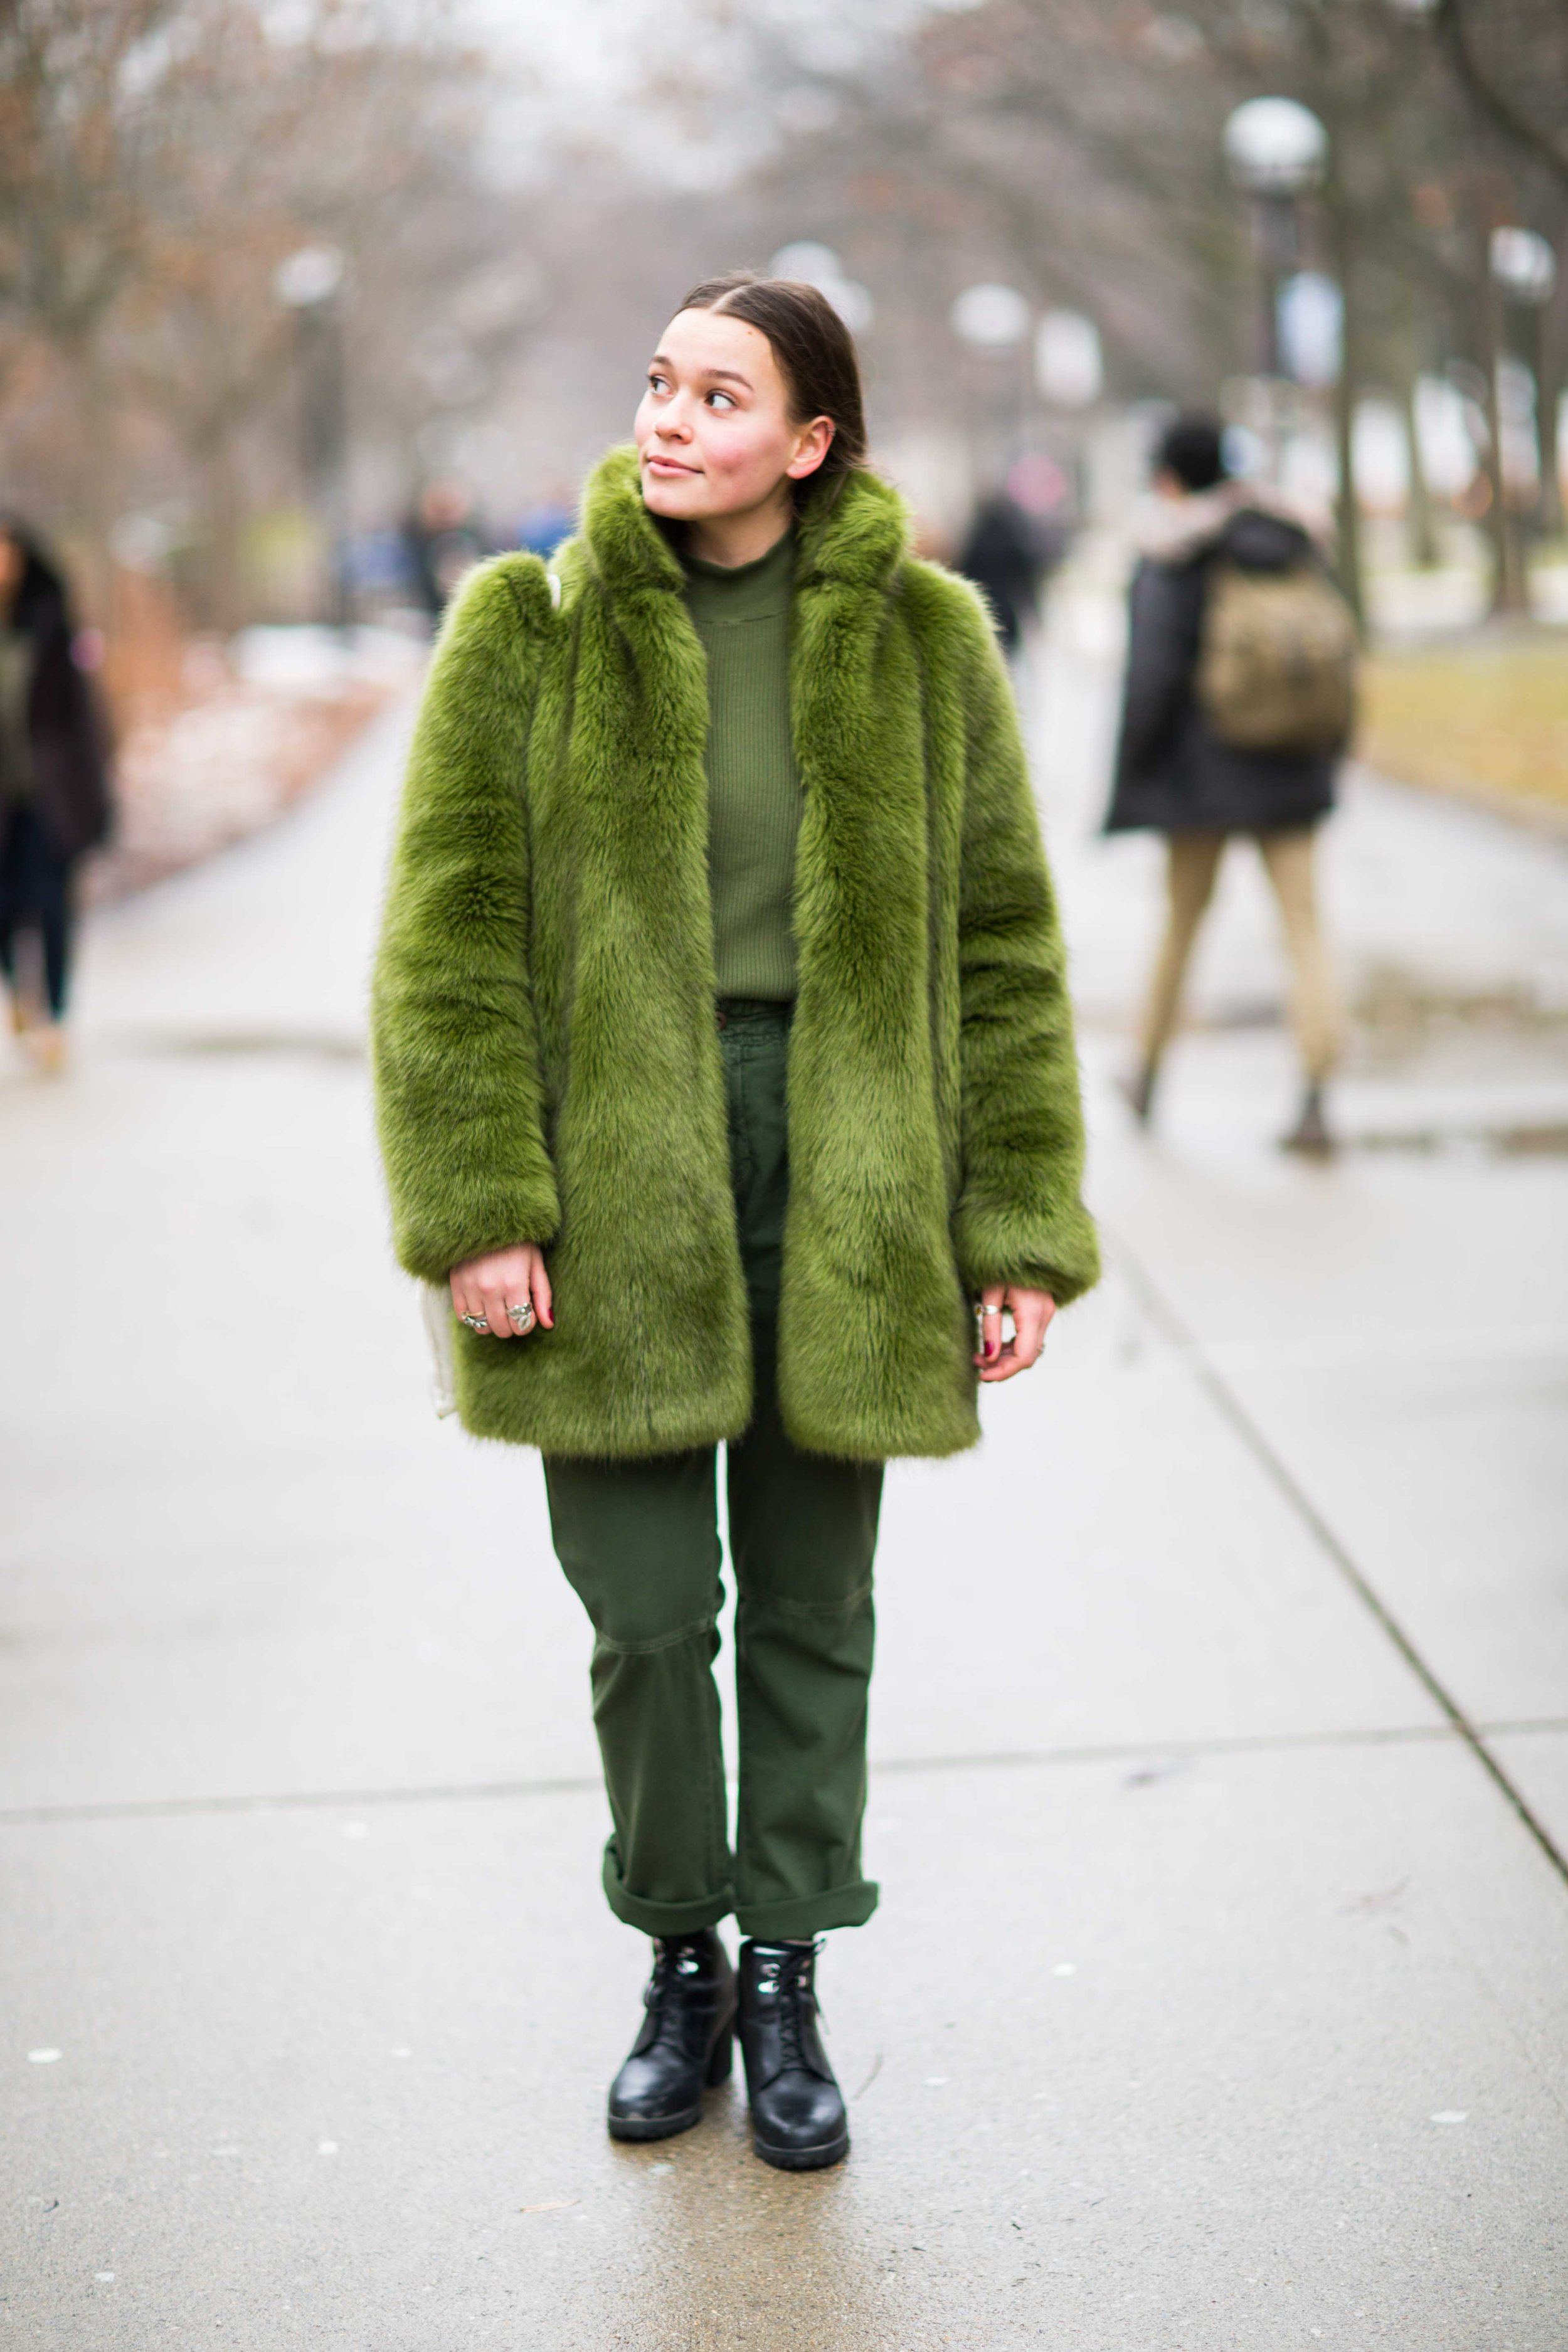 Week of January 26th - The best looks around Ann Arbor